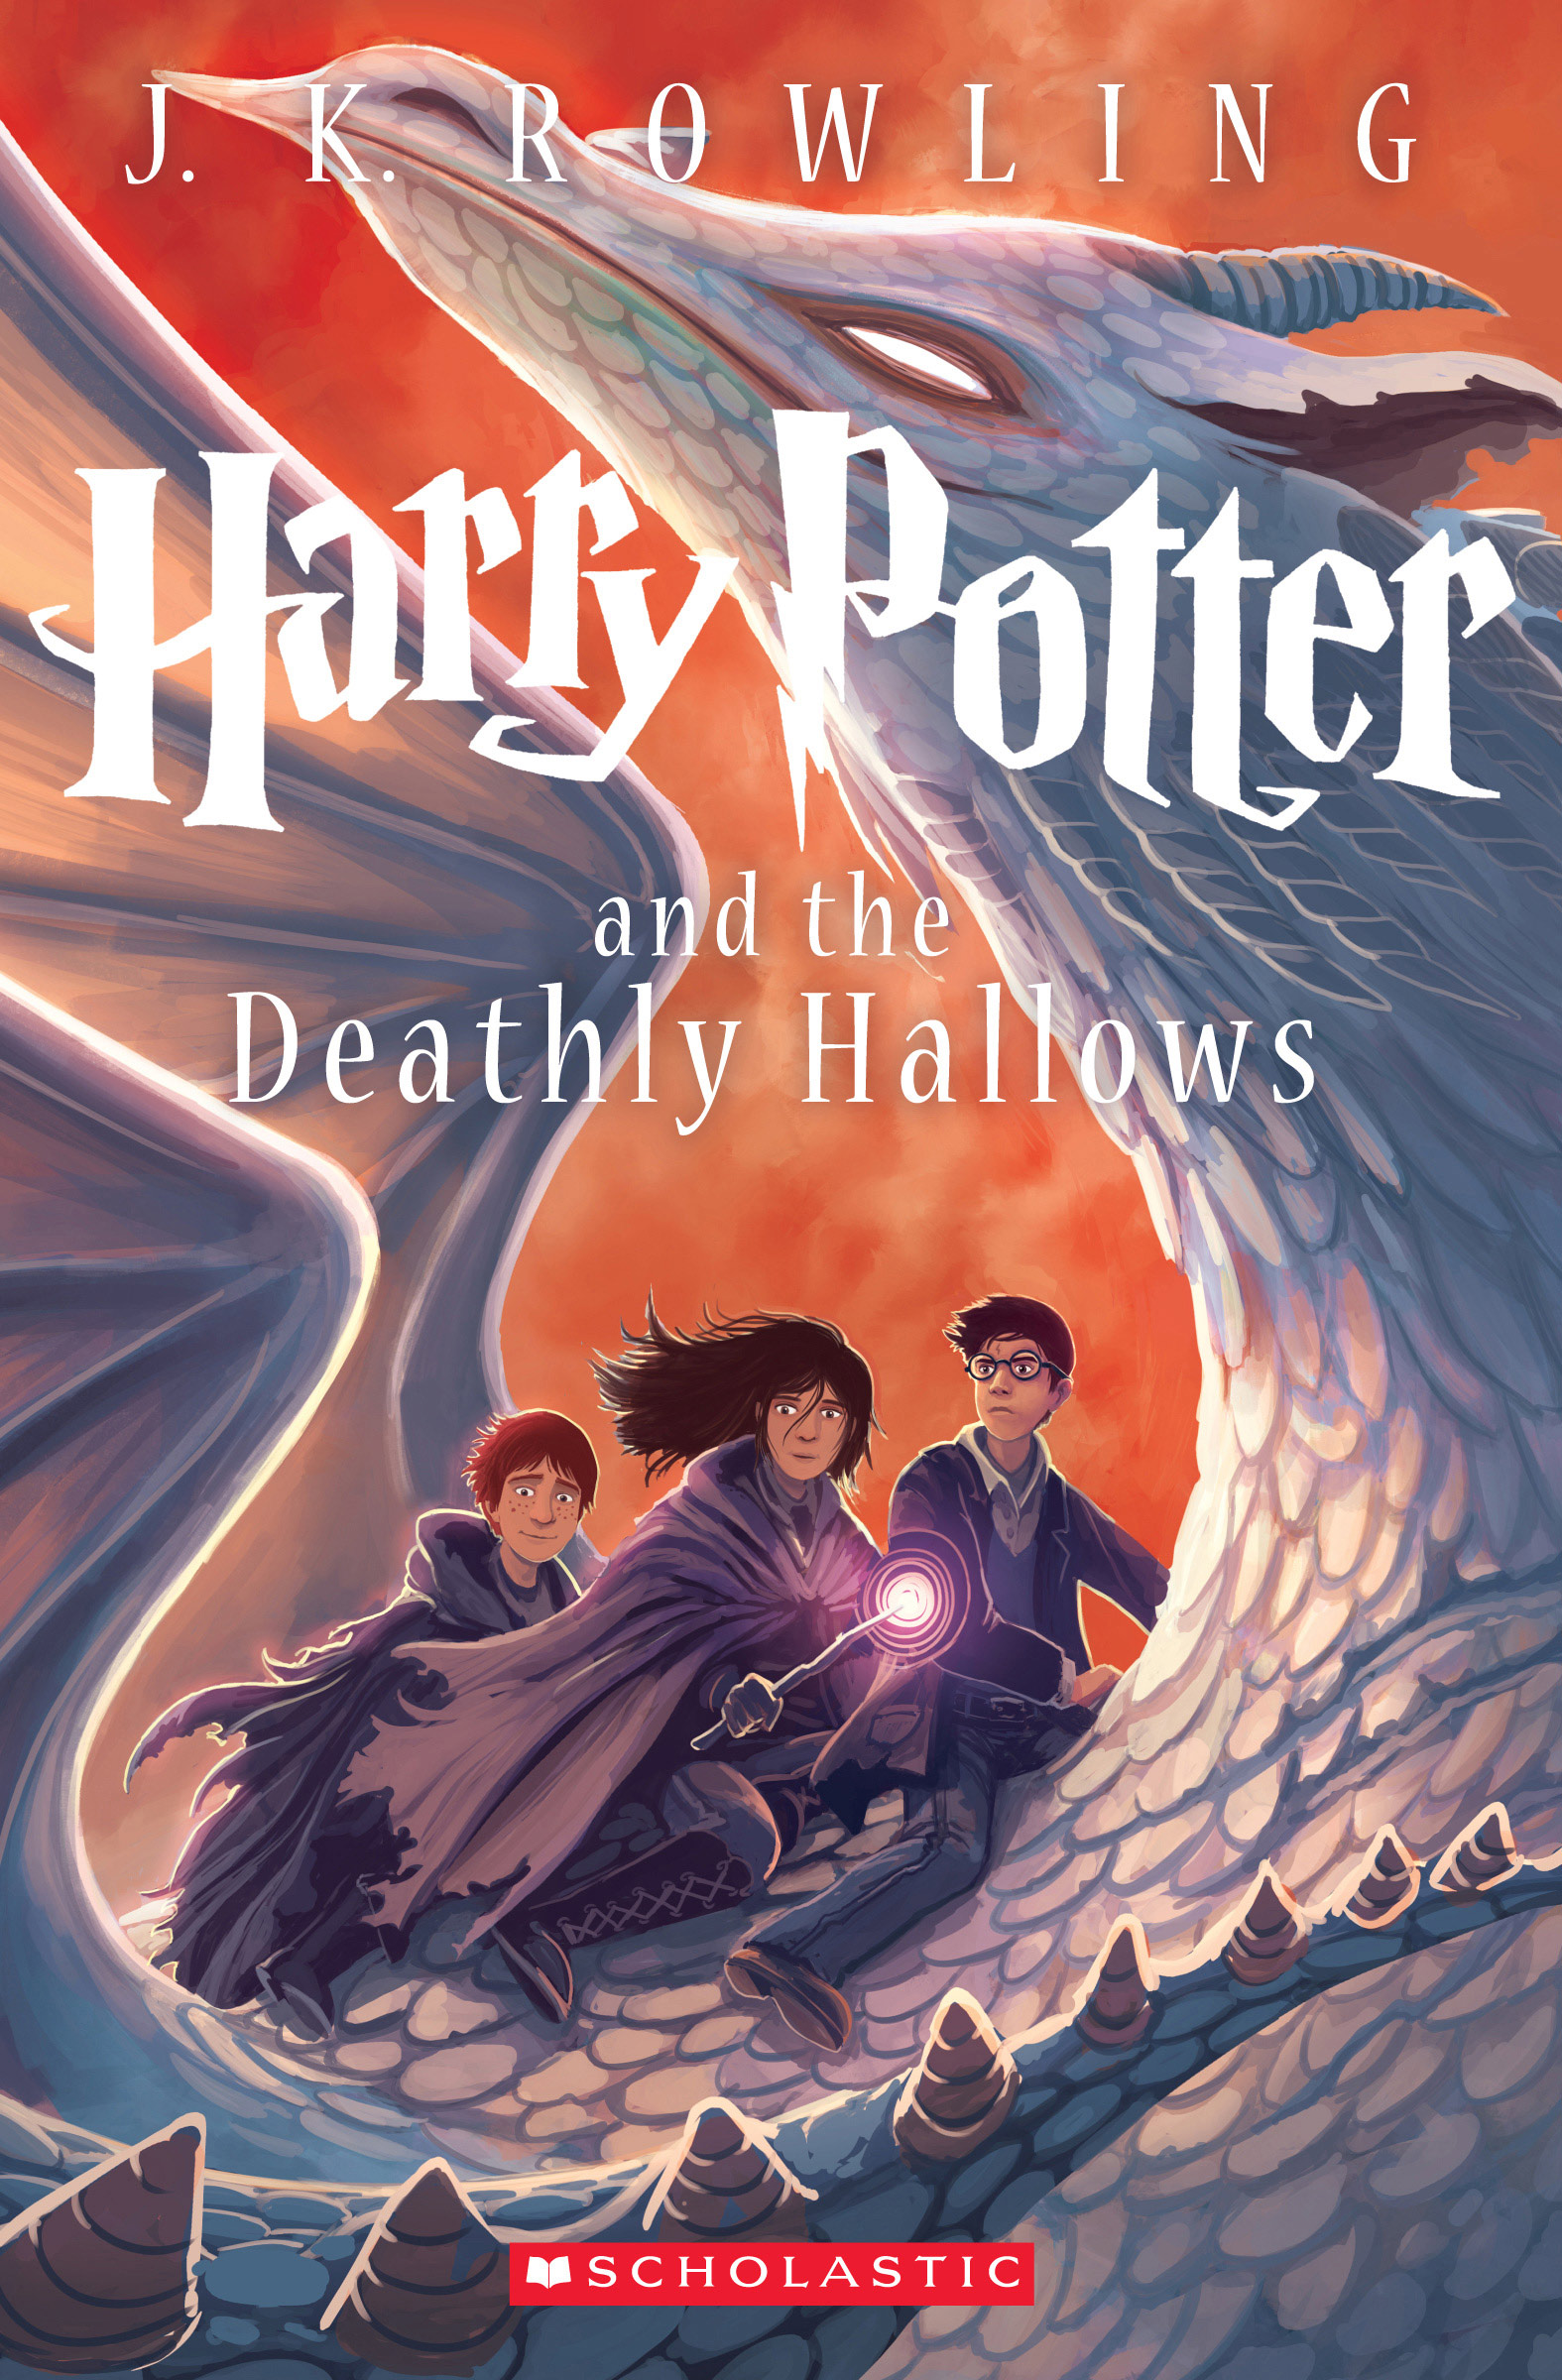 Kibuish_DeathlyHallows_Cover